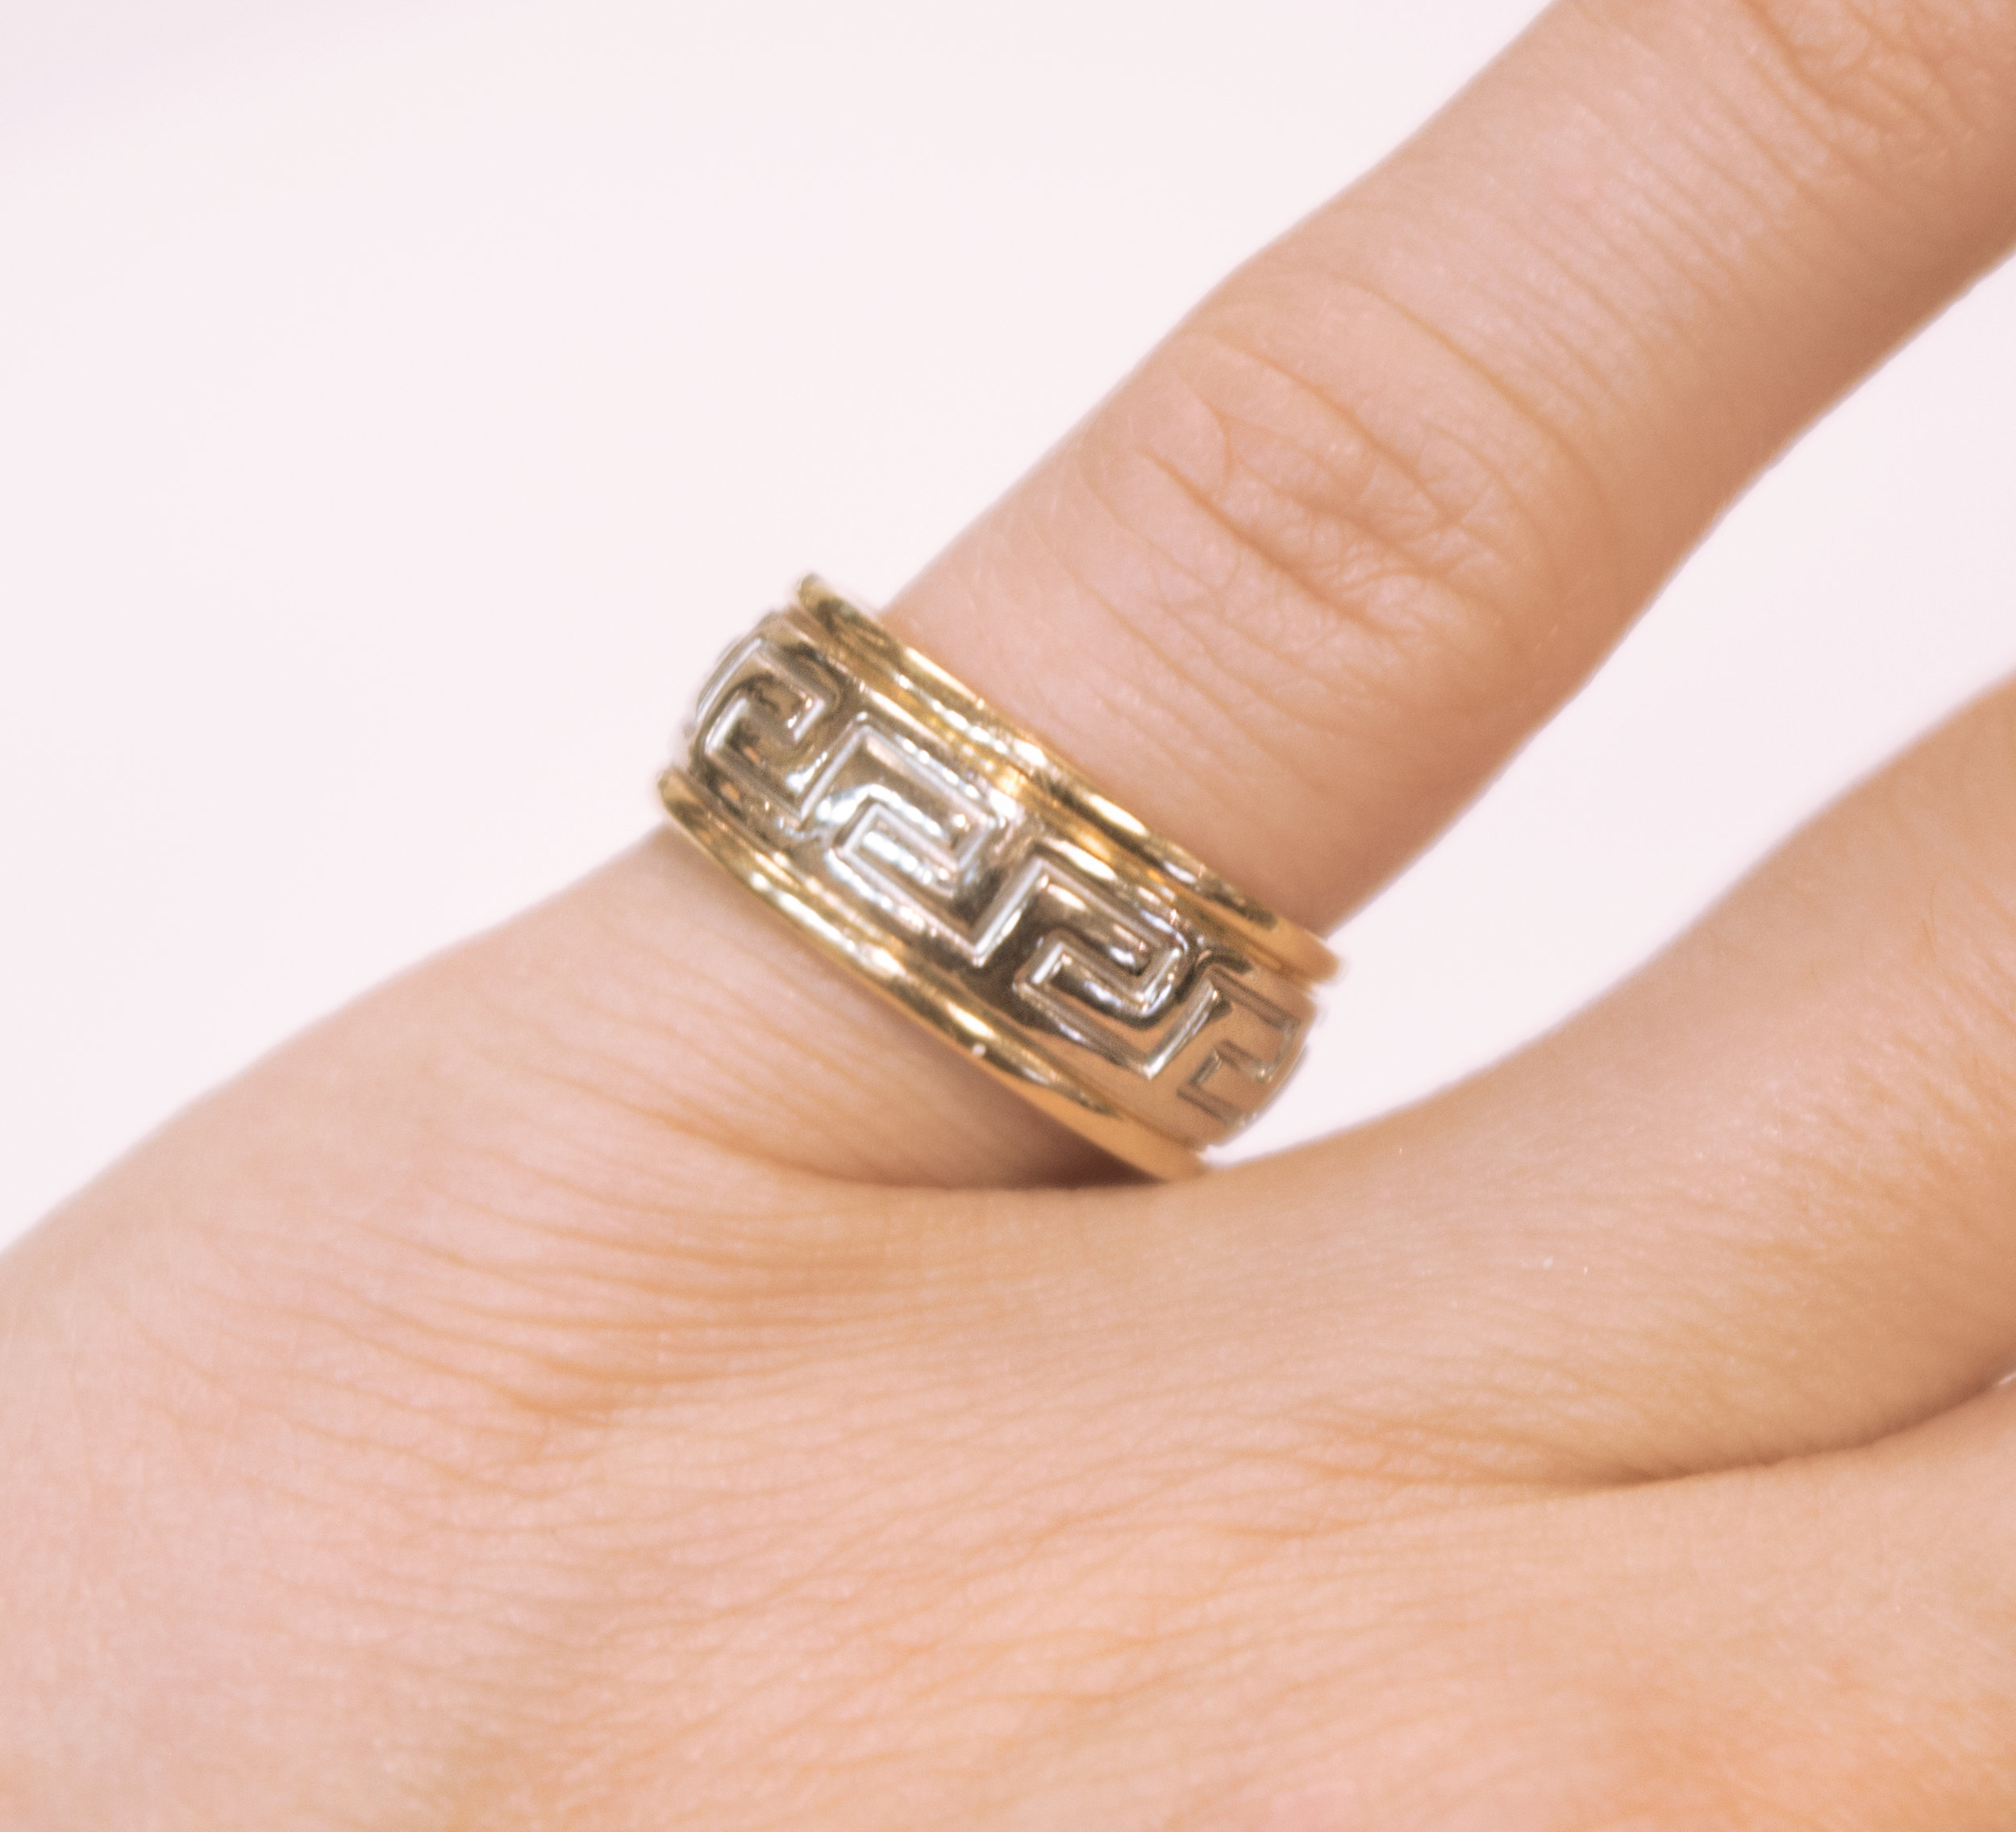 Estate Greek Key band with 14K yellow and white gold.JPG